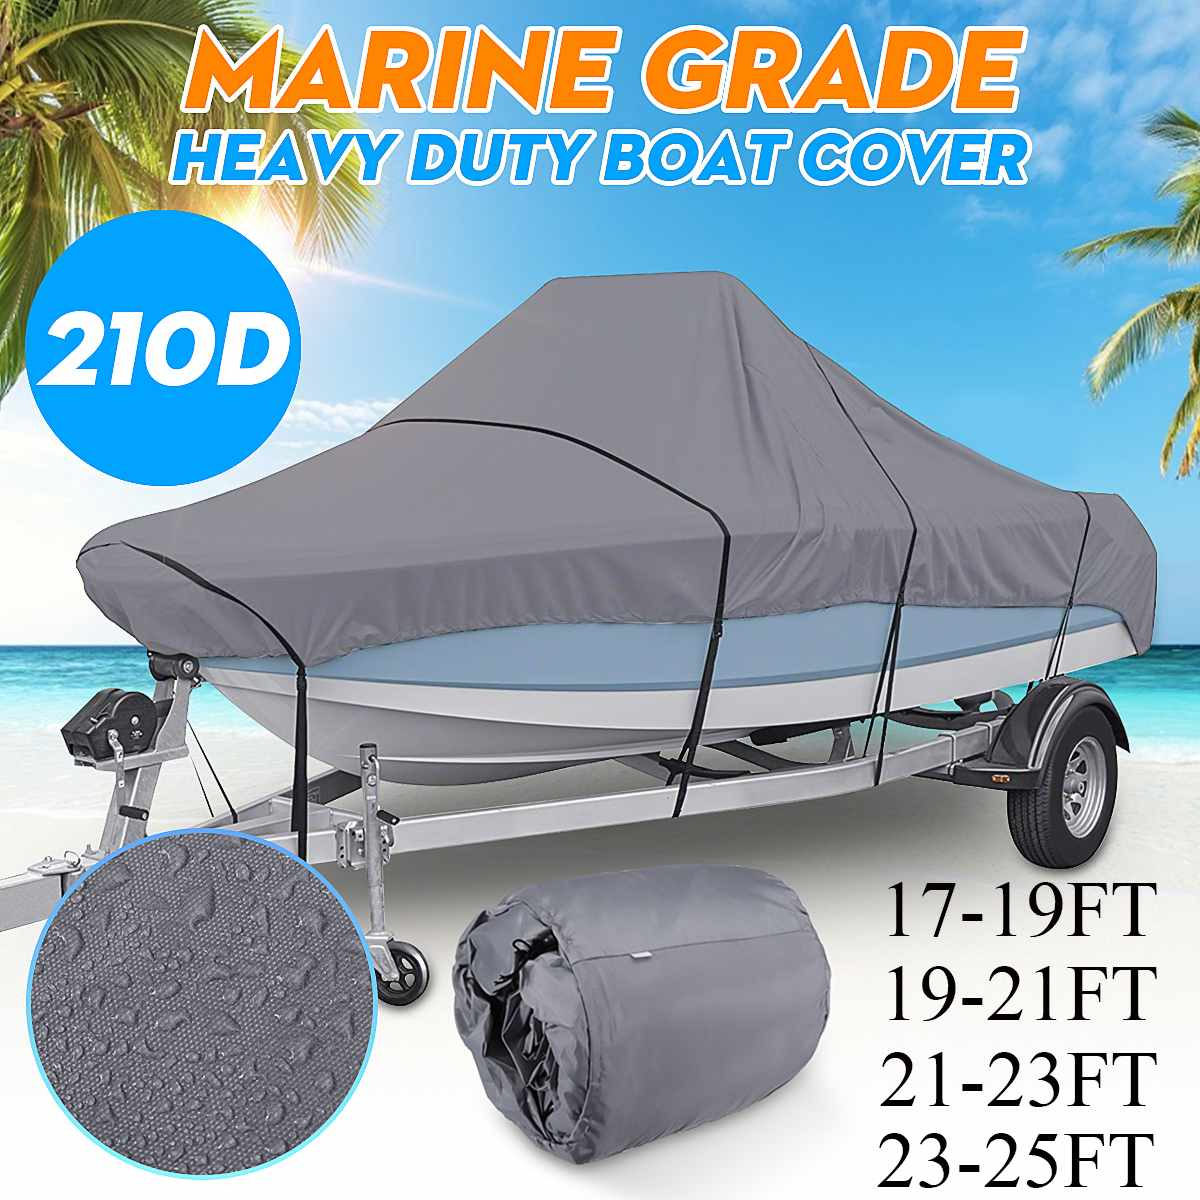 17-25FT Waterproof Boat Cover Marine Grade 210D Trailerable V-hull Fishing Ski Sunproof UV Protector Boat Mooring Cover